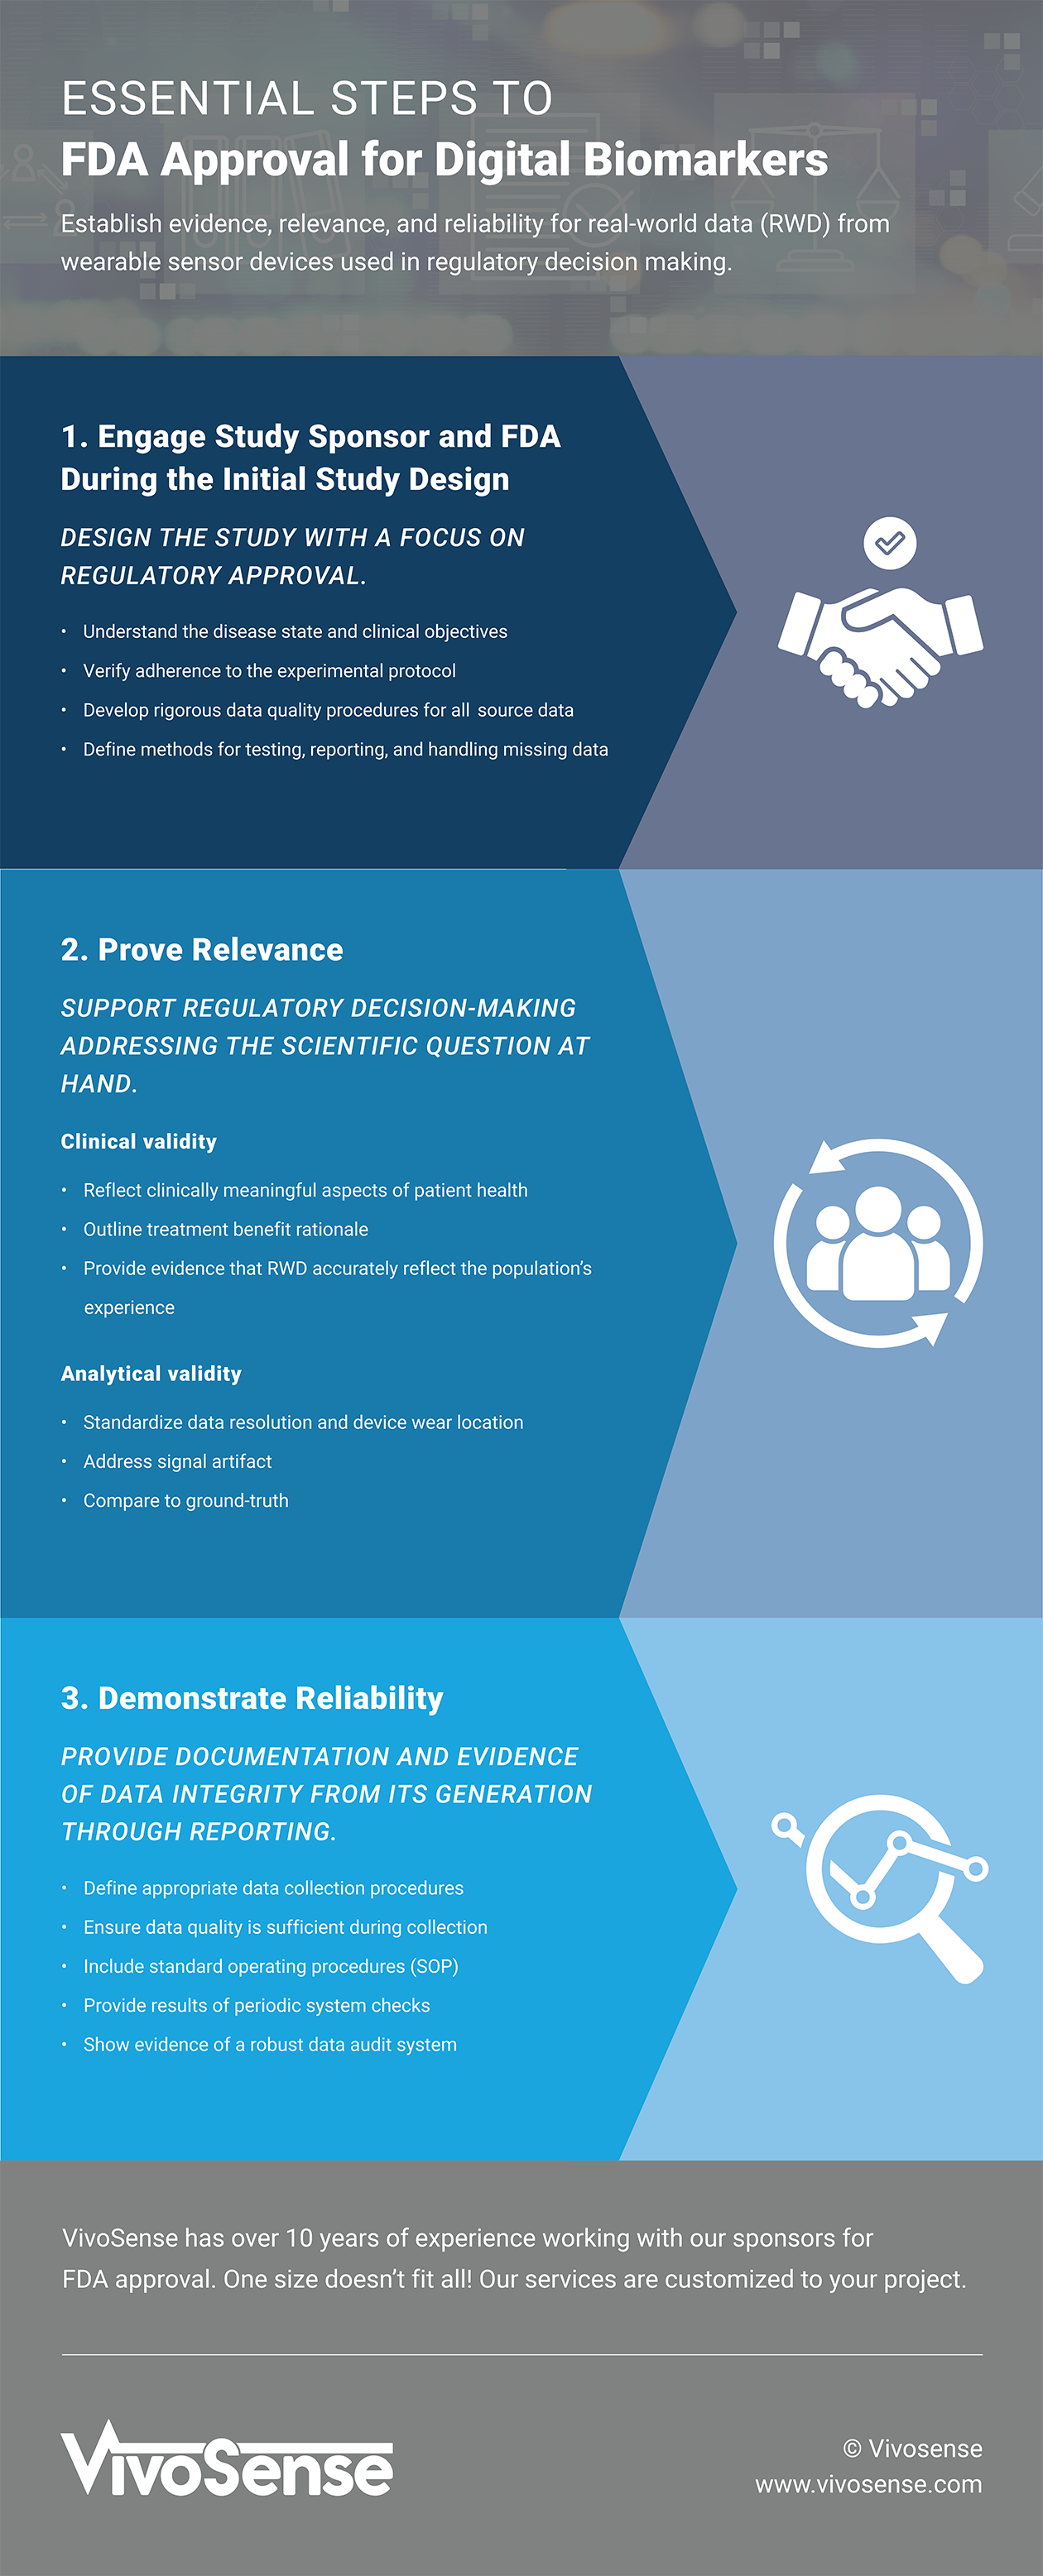 Essential Steps to FDA Approval for Digital Biomarkers [Infographic]